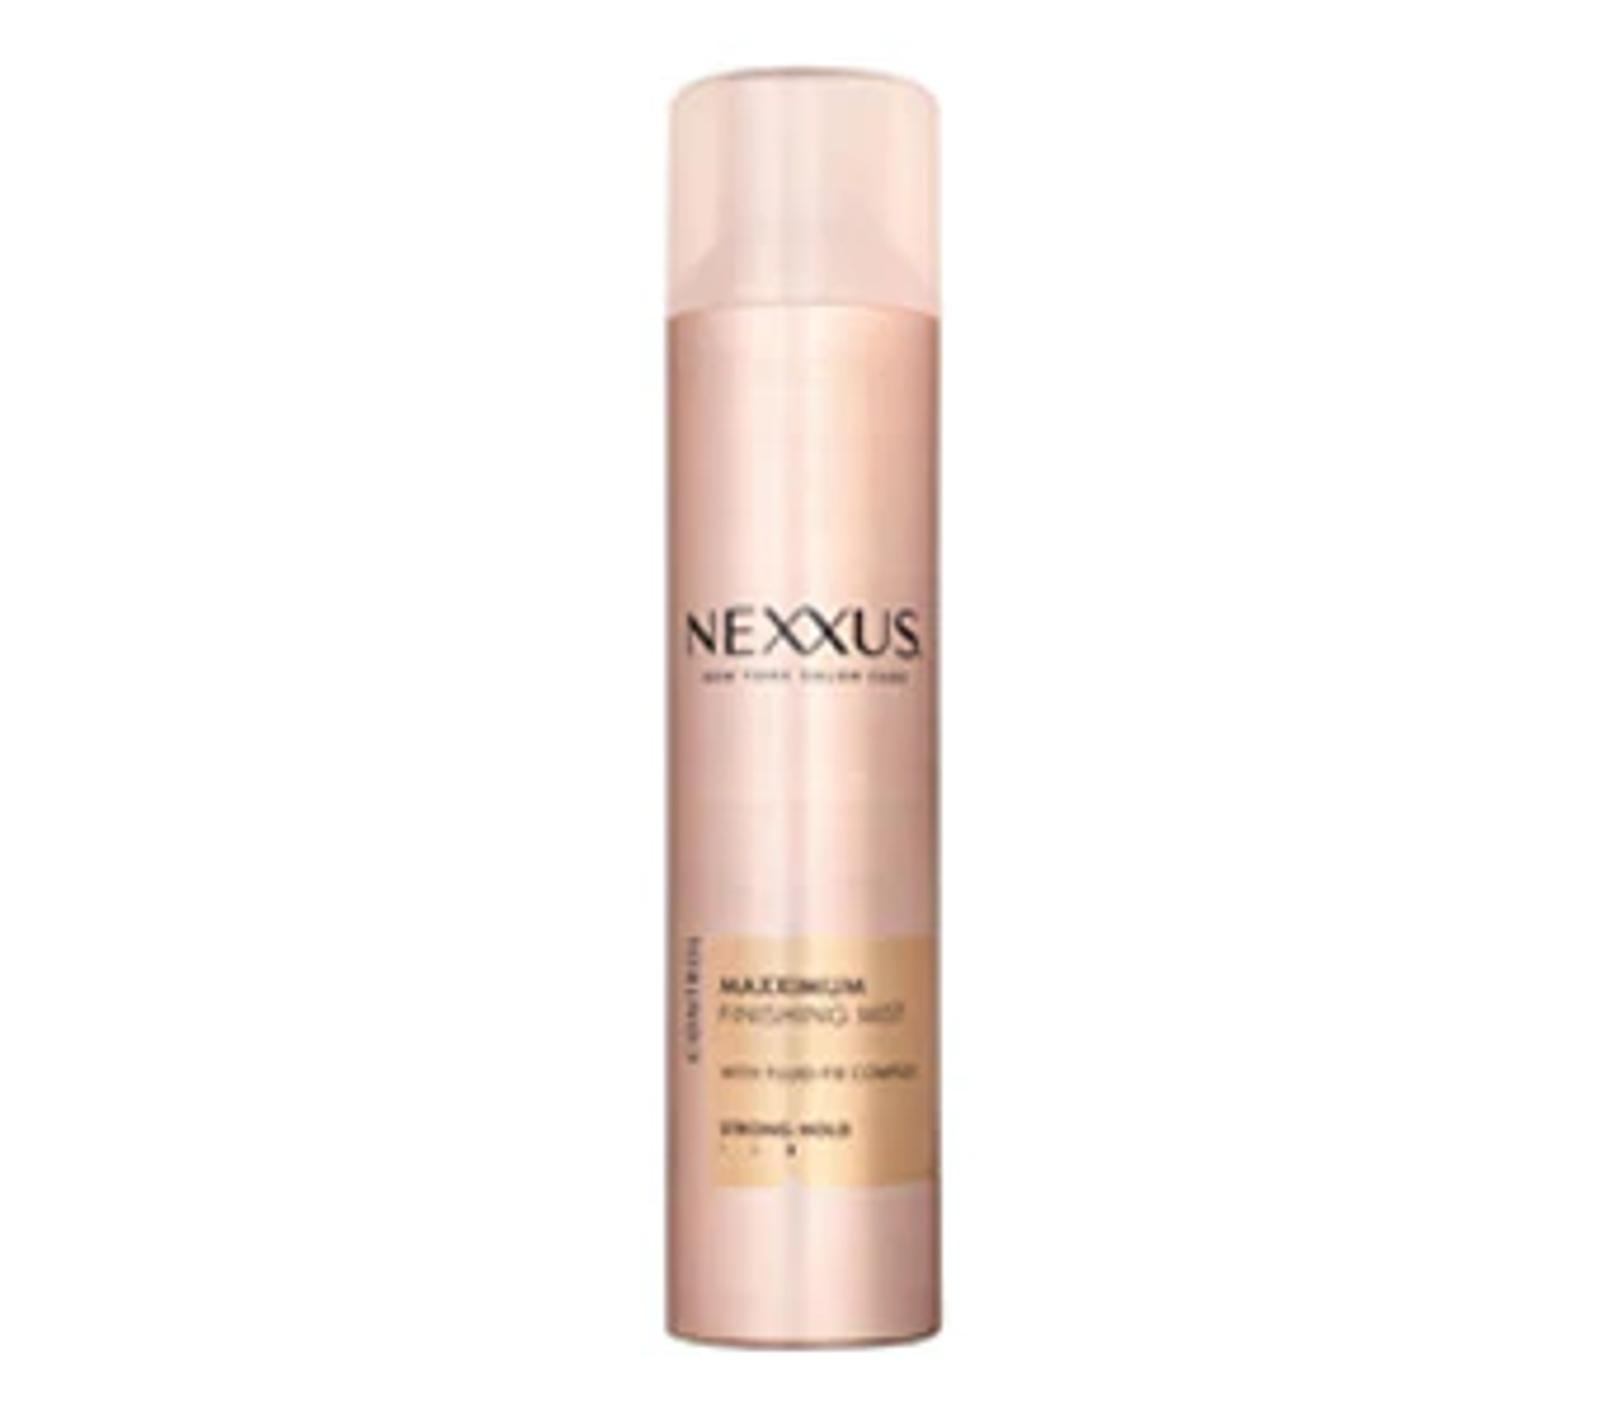 Product Shot of Nexxus Maxximum Finishing Mist